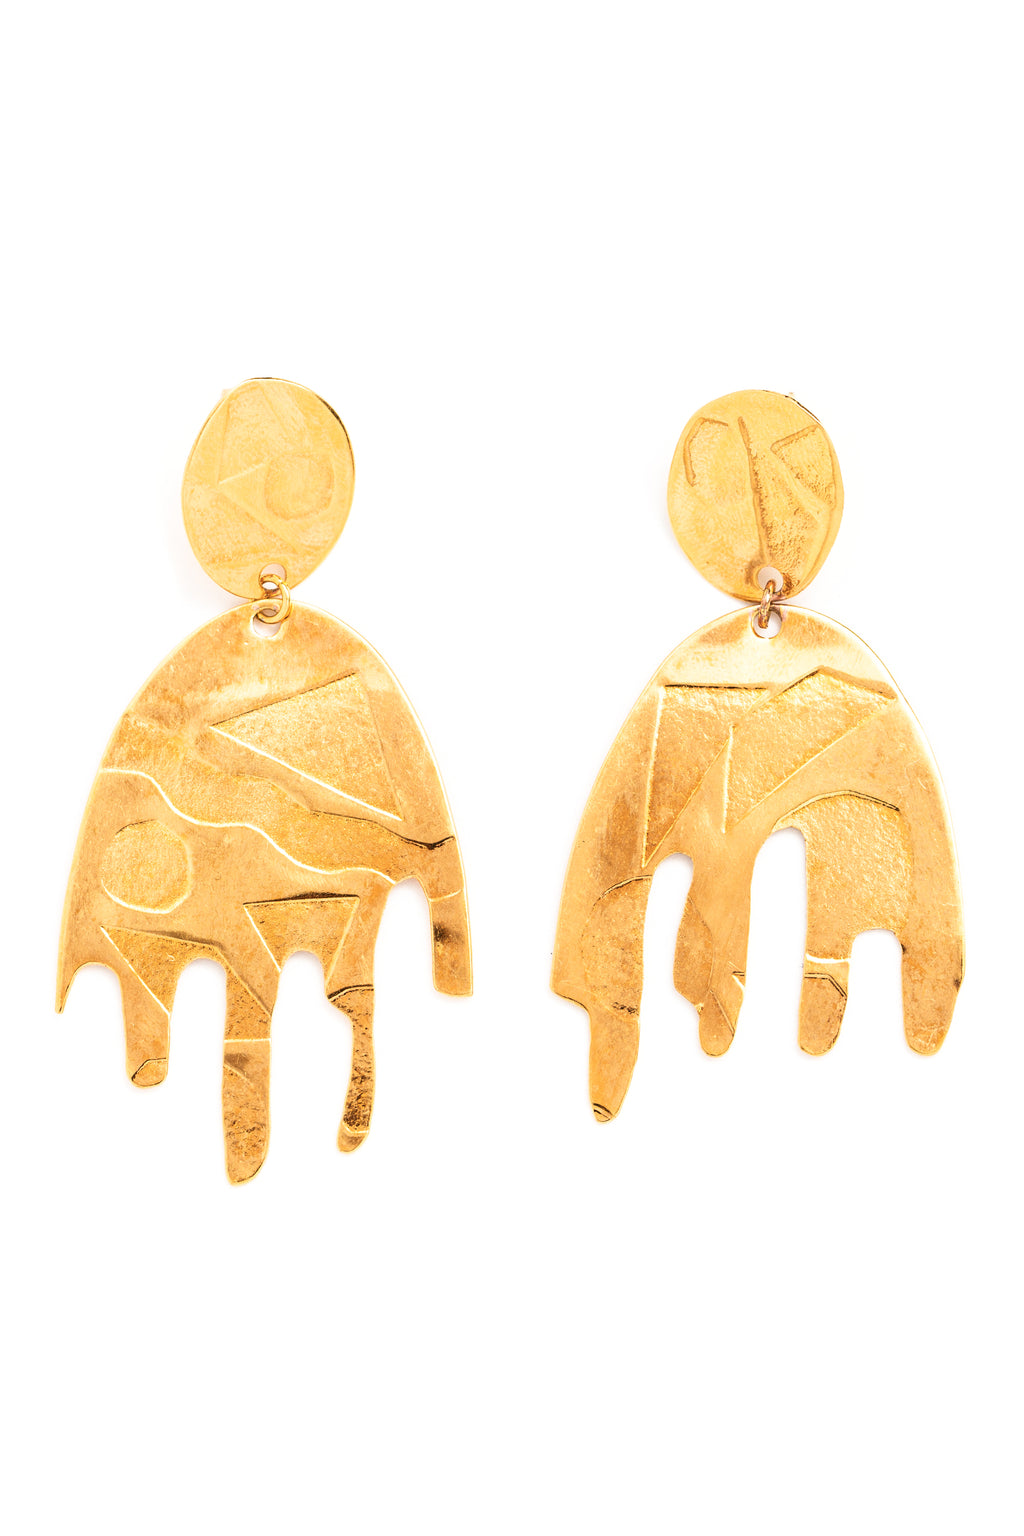 CAT LUCK Movement + Texture Statement Earrings